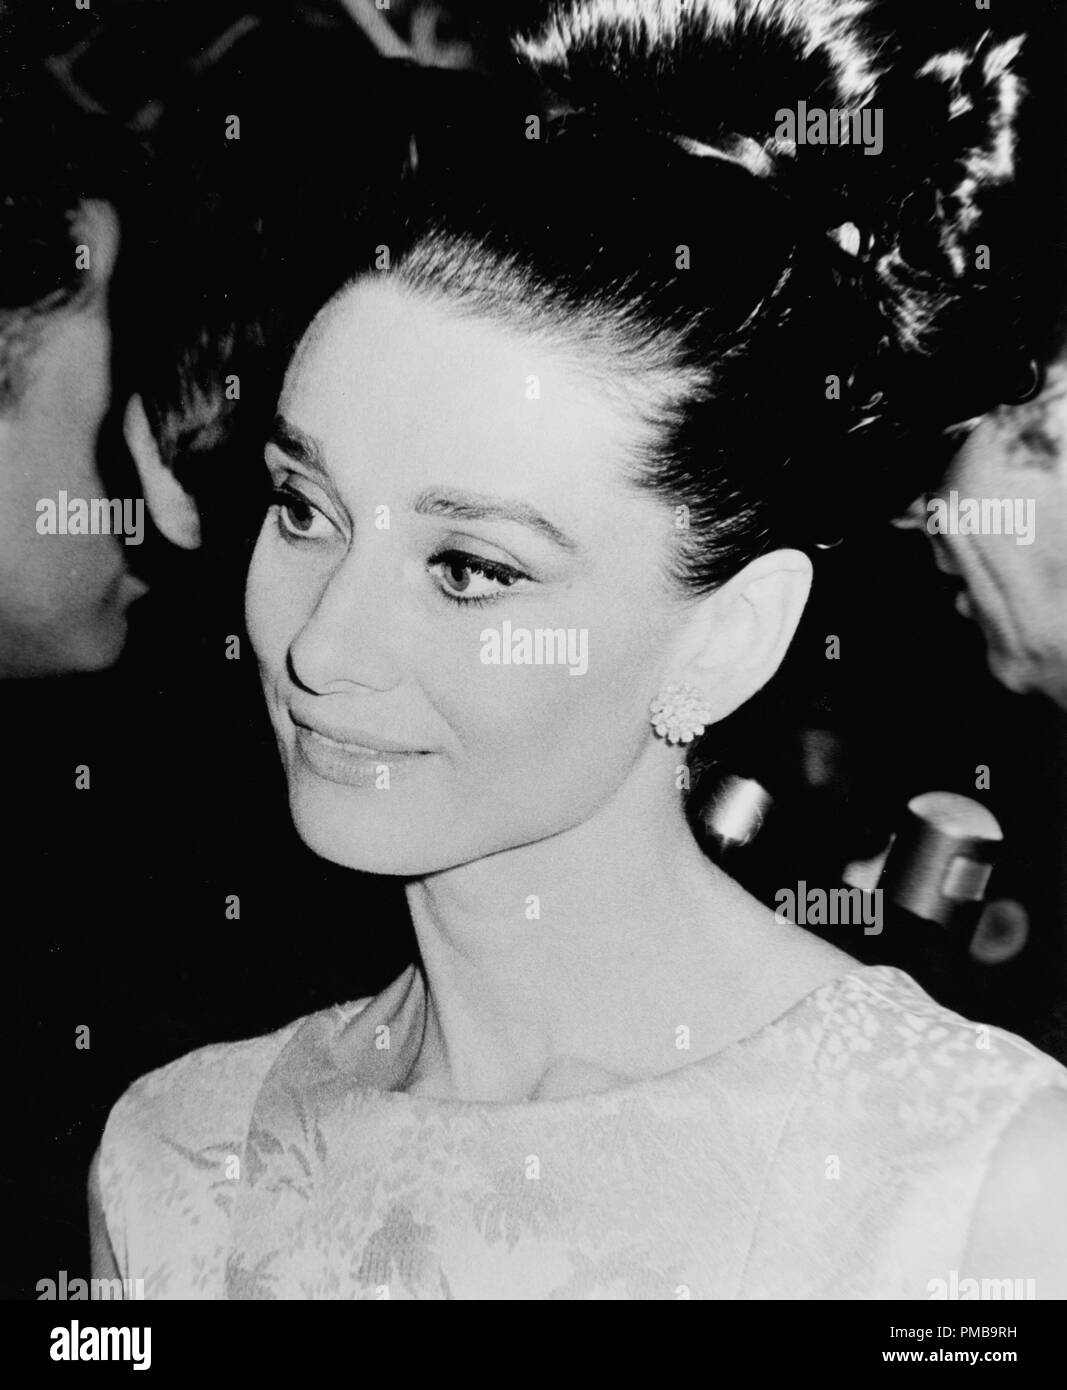 Audrey Hepburn at the premiere of 'My Fair Lady' 1964  File Reference # 32557_948THA - Stock Image